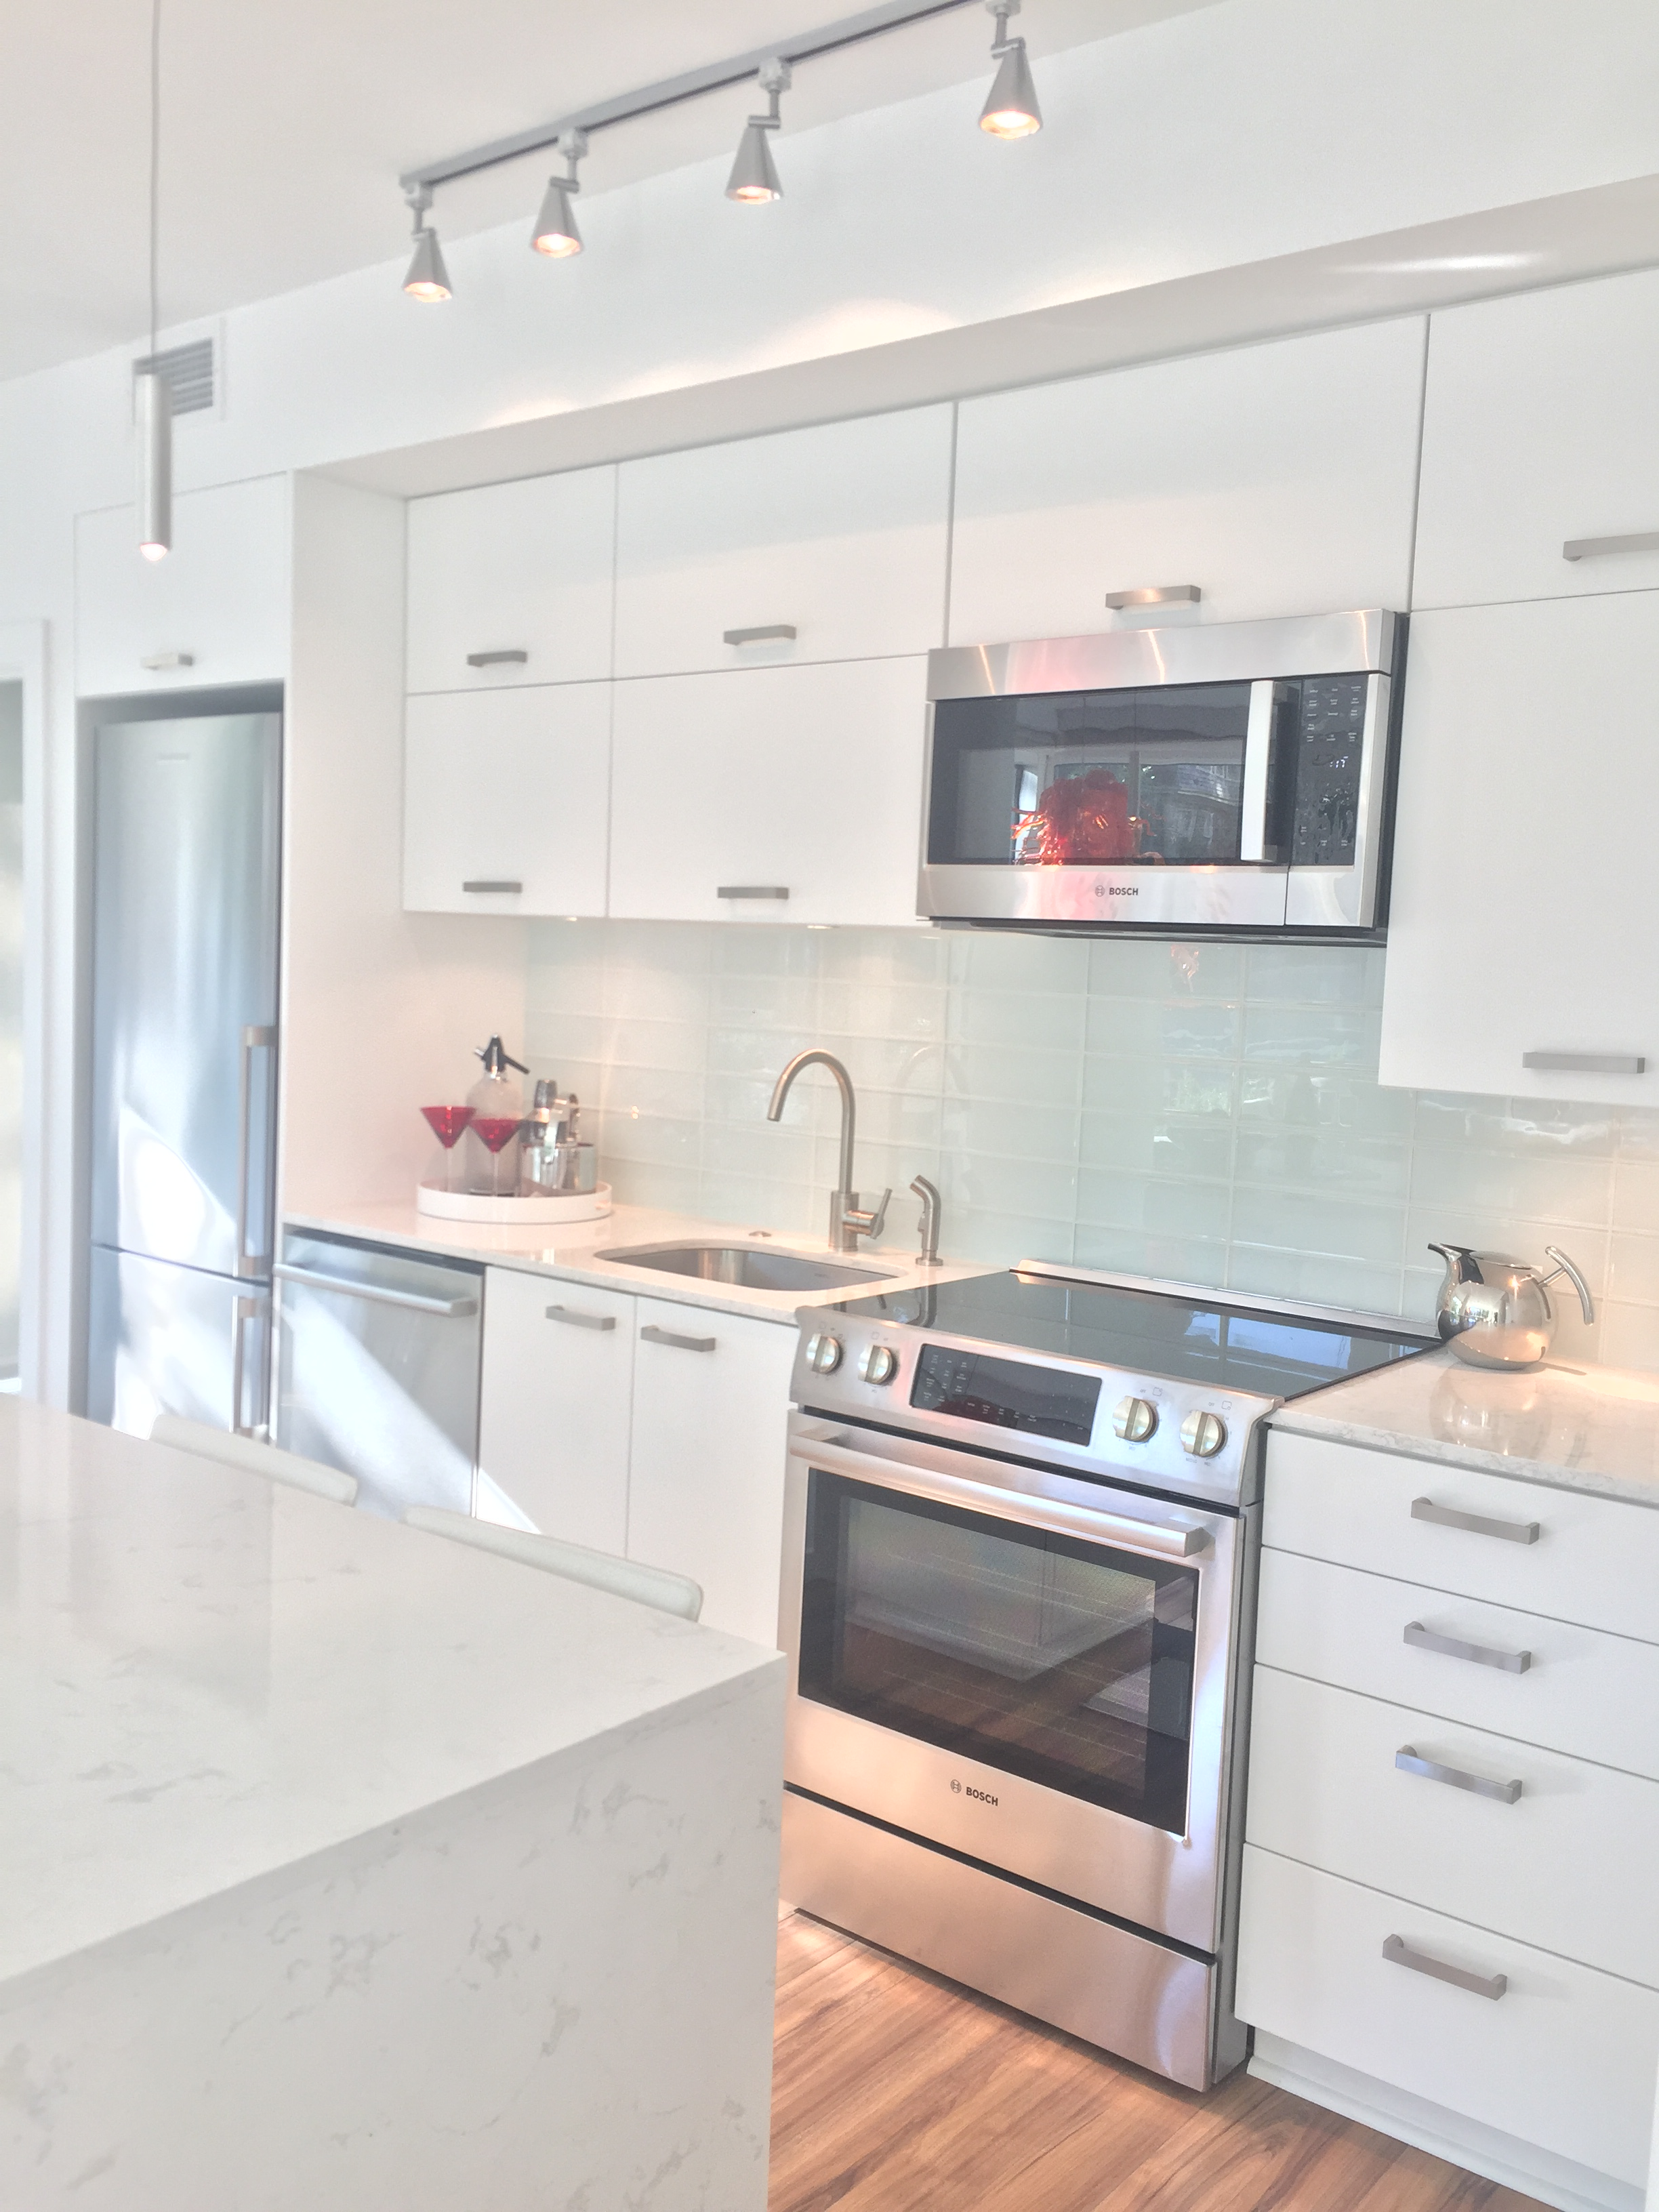 Kitchen Envy is Real at 5333 Connecticut - Live 5333